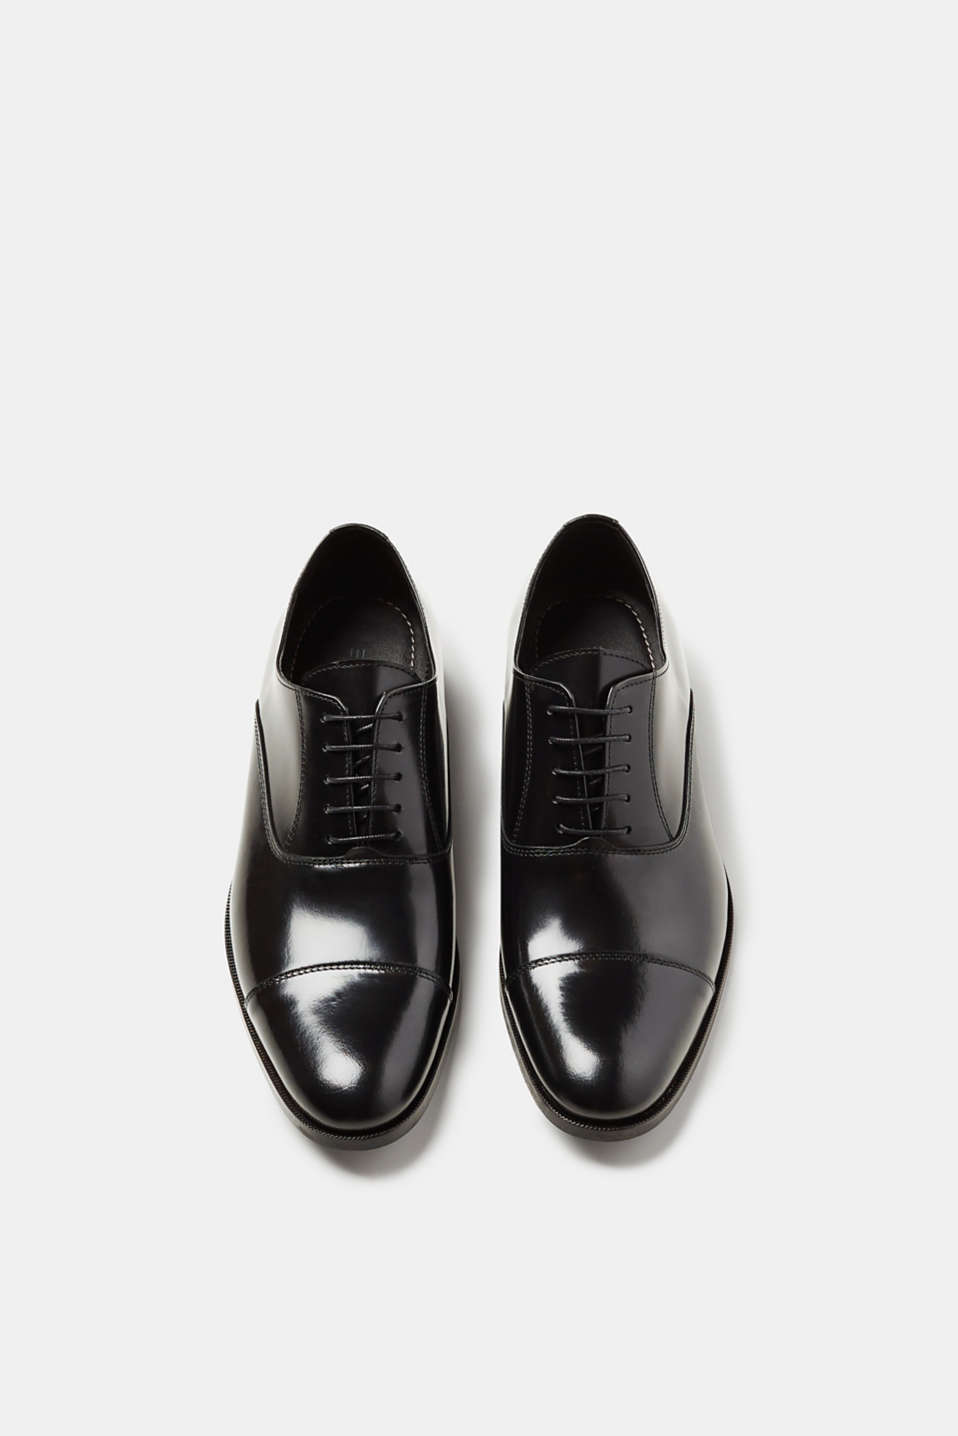 Modern business lace-ups in polished leather